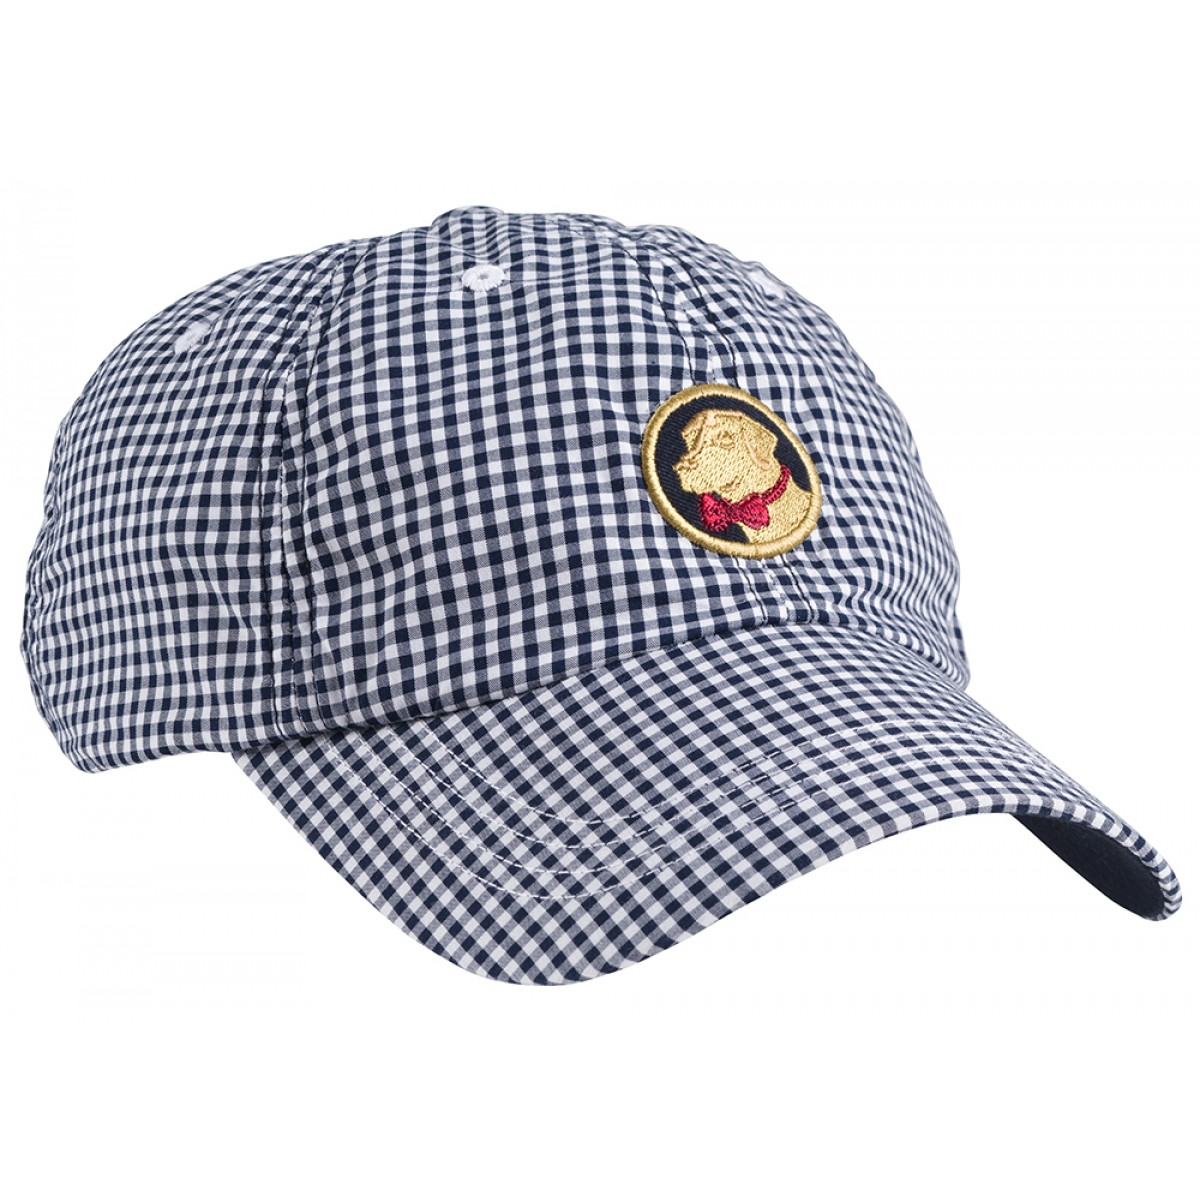 Gingham Frat Hat - Navy